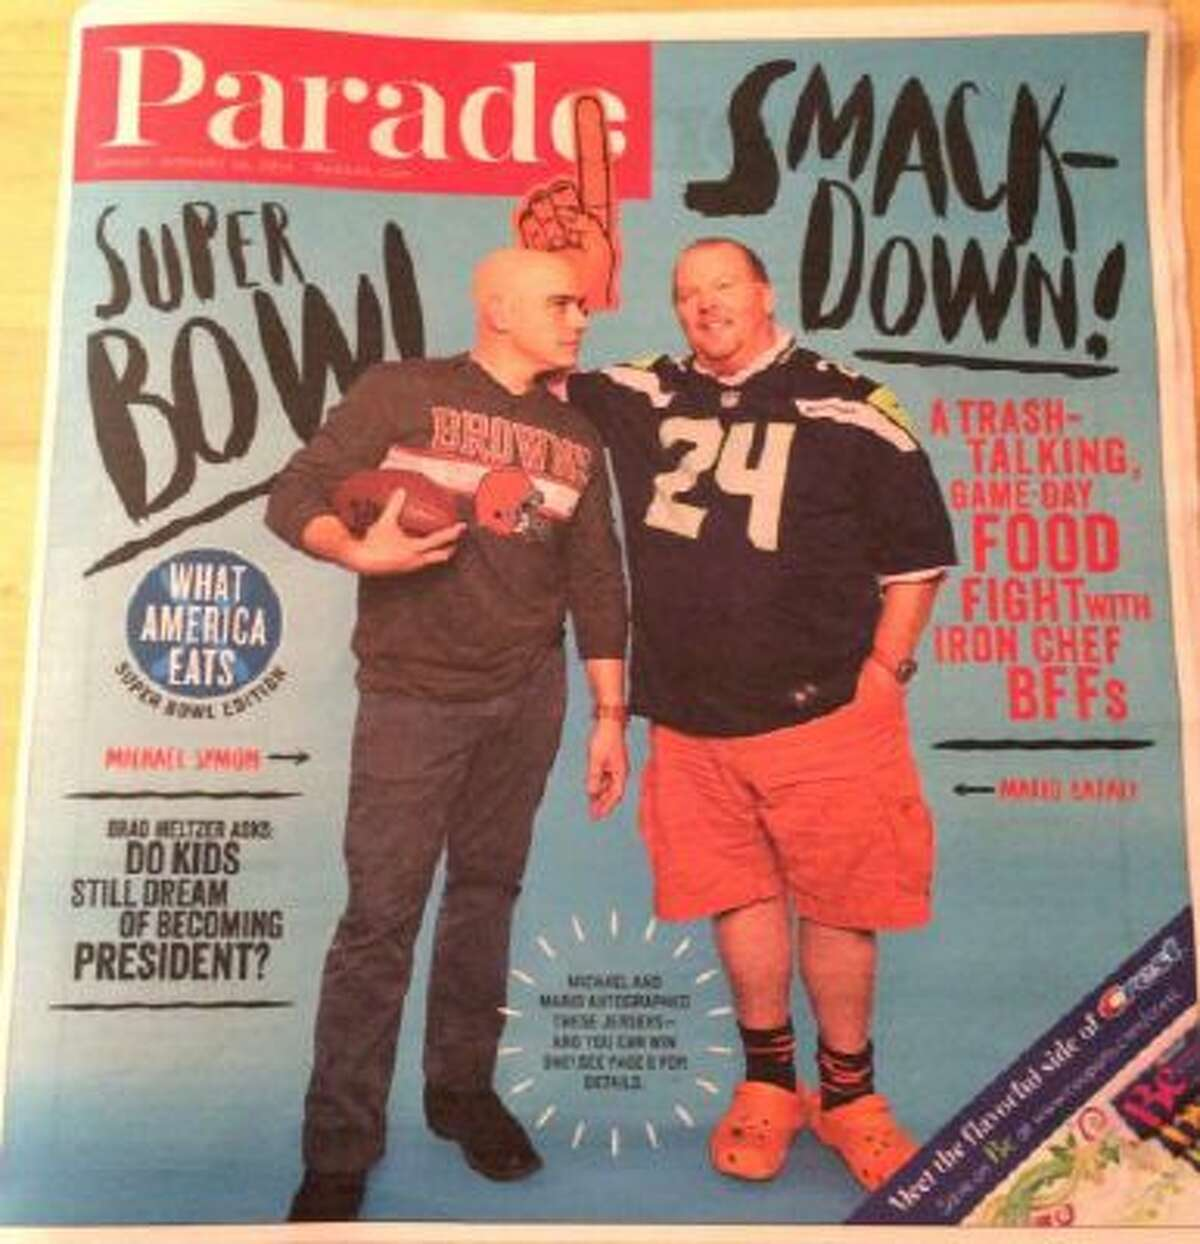 At least Michael Symon, left, had the sense not to diss Denver.